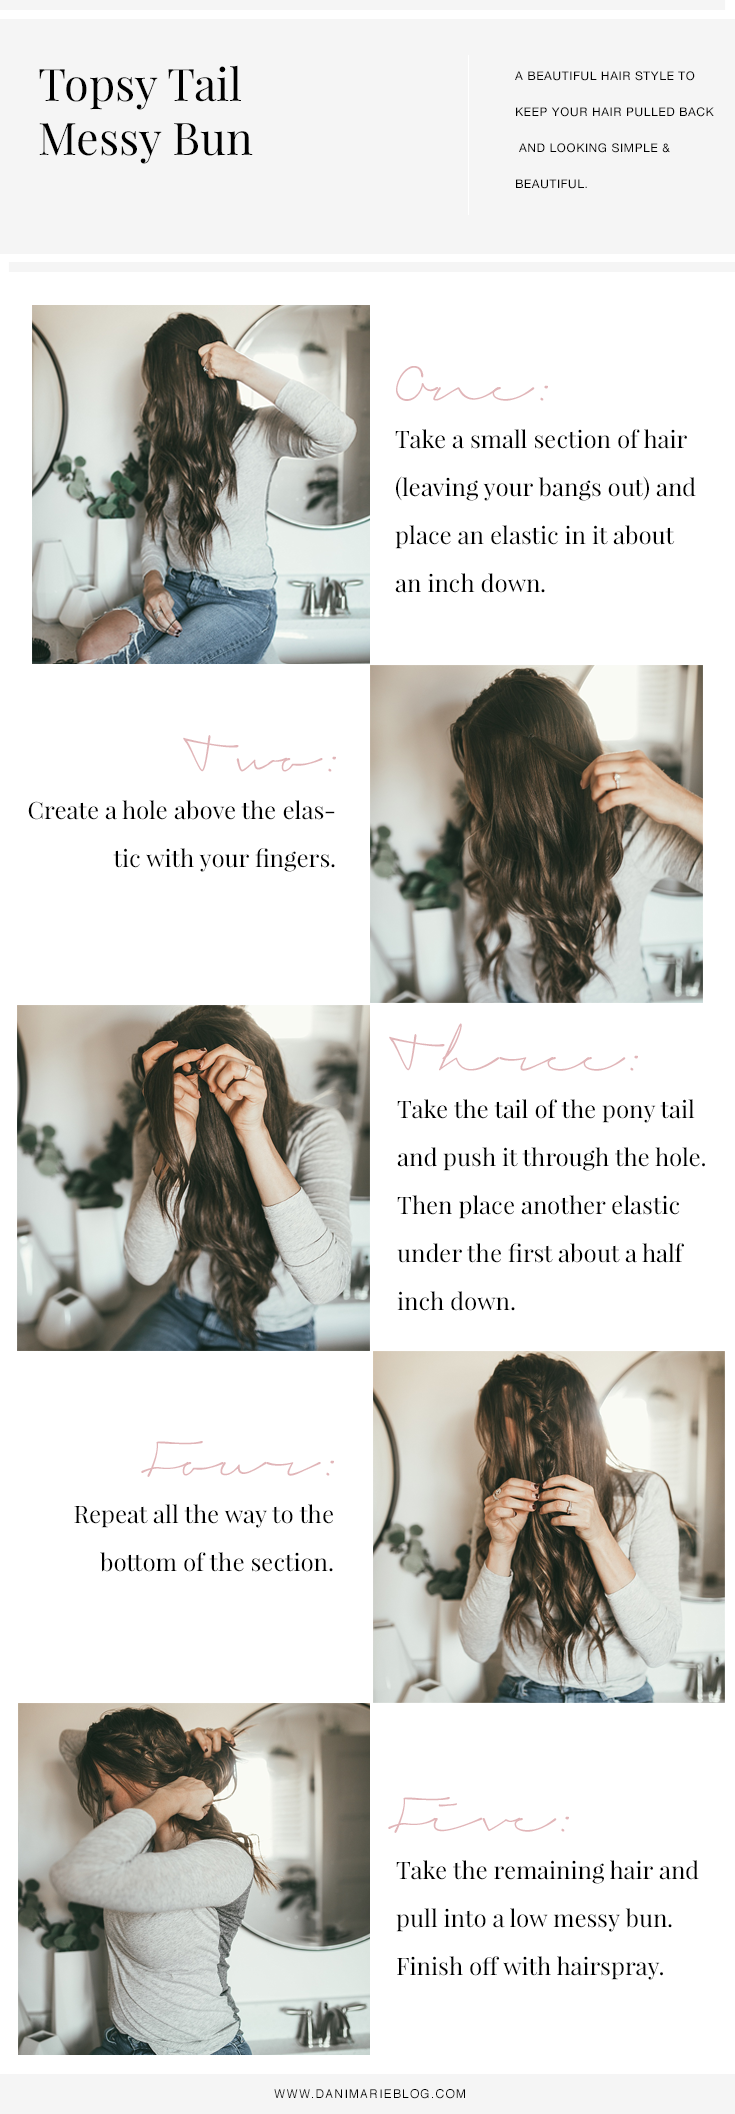 Pin this ASAP if you have been looking for the best EASY yet stylish hair tutorial? Utah Style Blogger Dani Marie is sharing the perfect topsy tail bun tutorial that everyone will love. See it HERE!